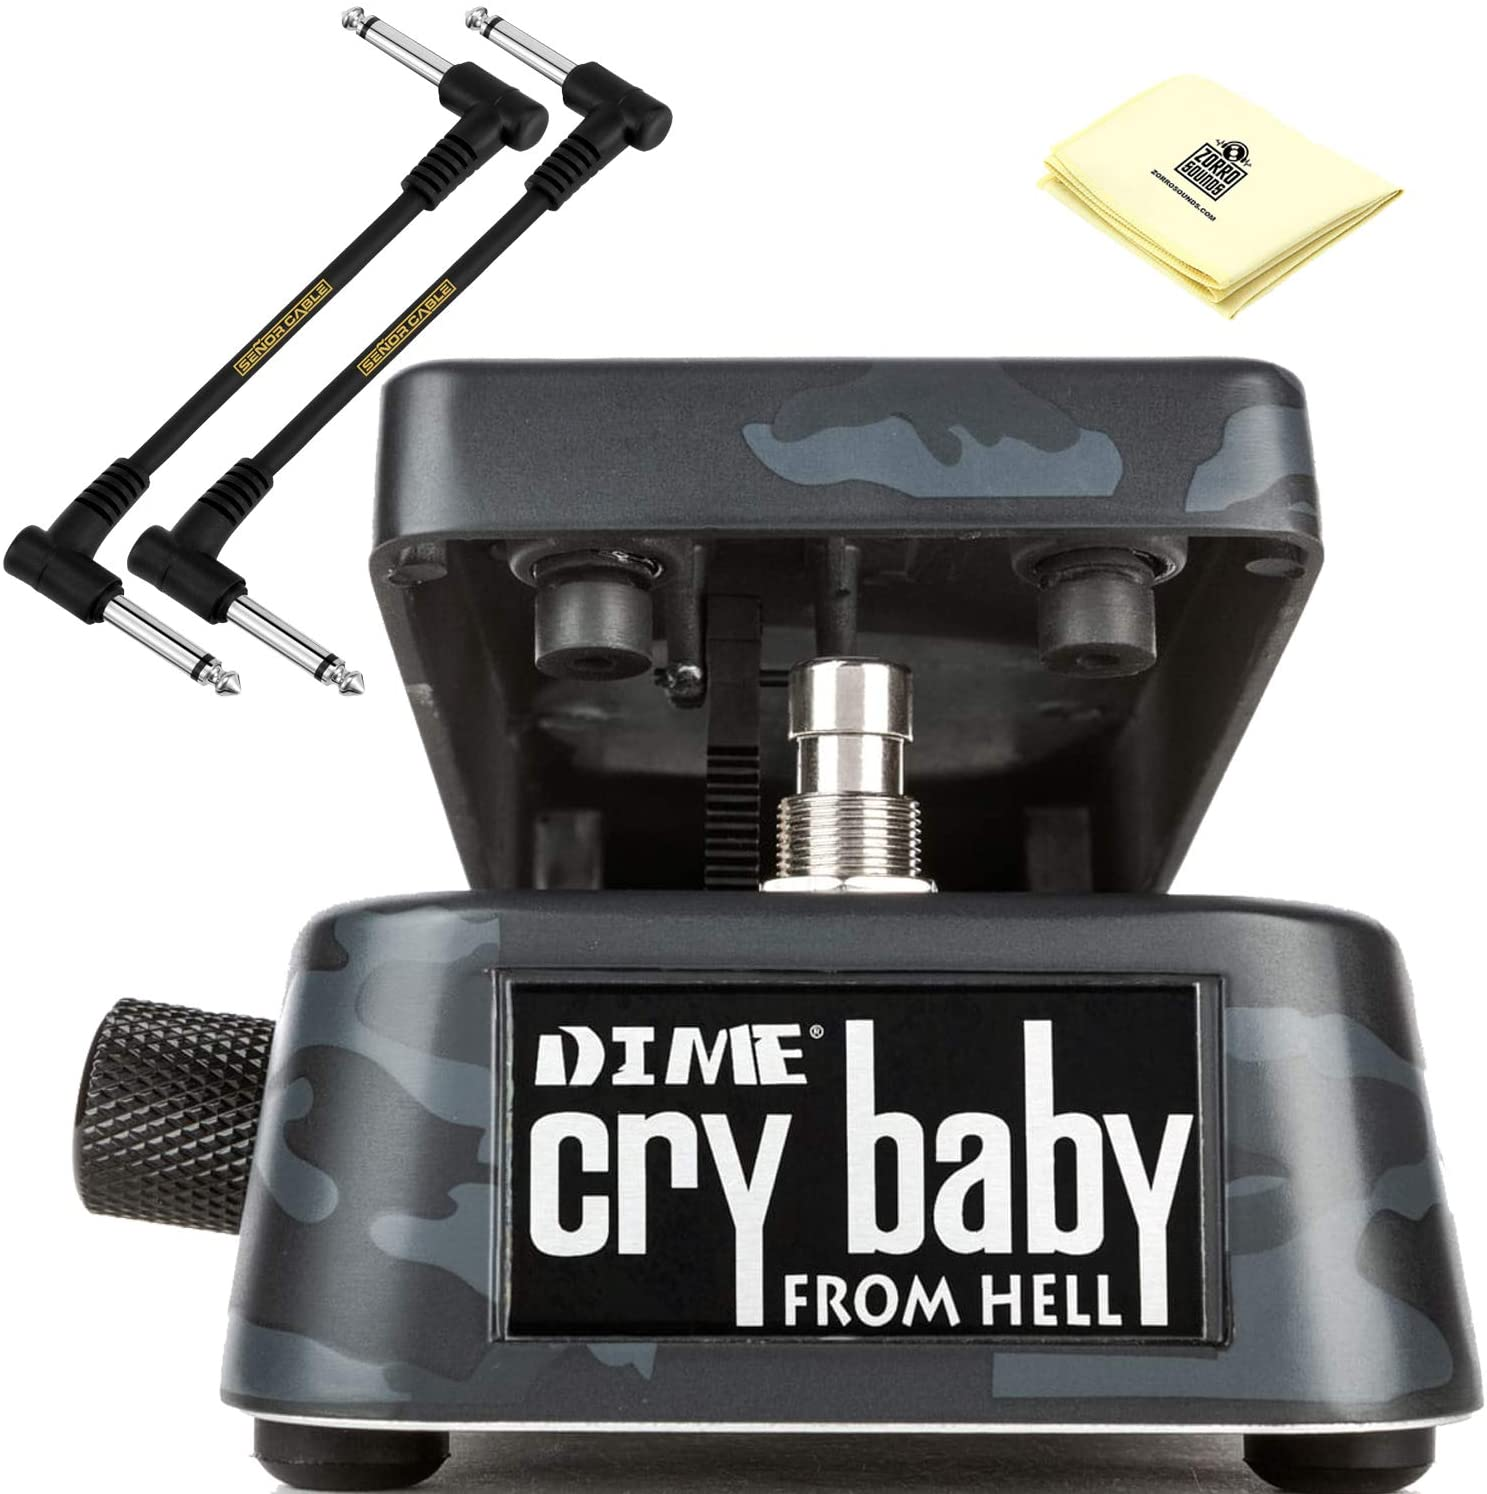 Dunlop DB01B Dimebag Cry Baby From Hell Wah Pedal with LED Indicators, 6-way Frequency Selector and Toe-down Frequency Control BUNDLE with 2 x Senor Patch Cables and Zorro Sounds Guitar Polish Cloth